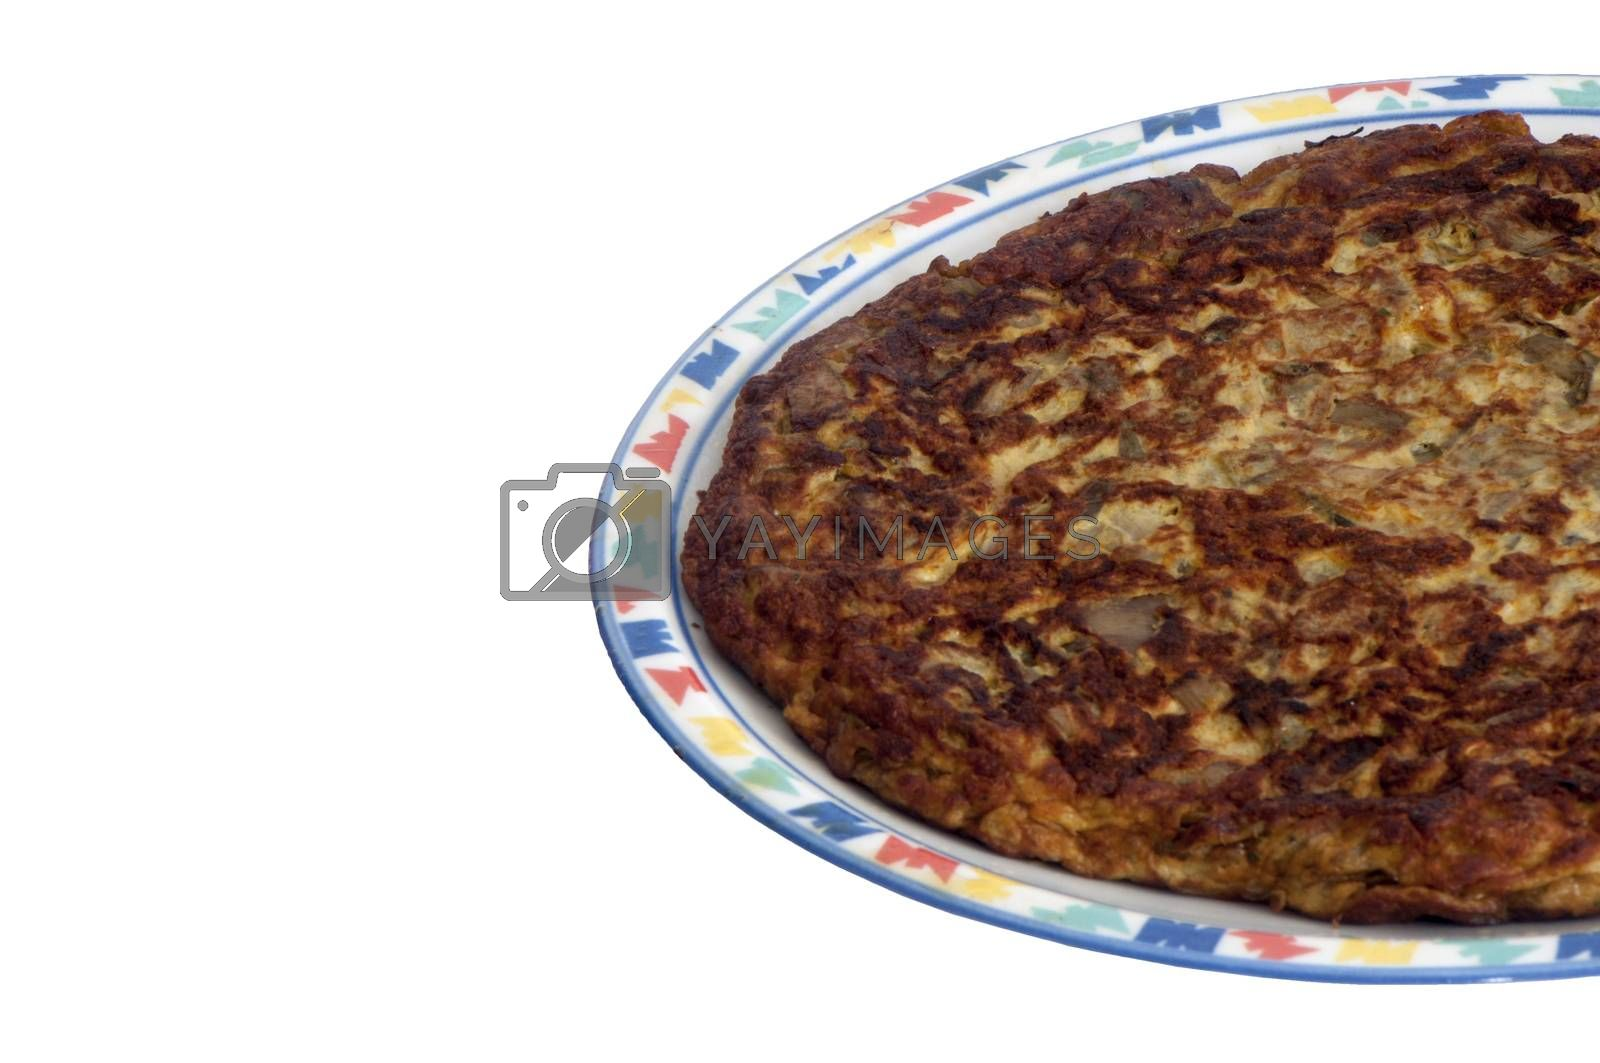 a delicious omelet with spinach and leeks